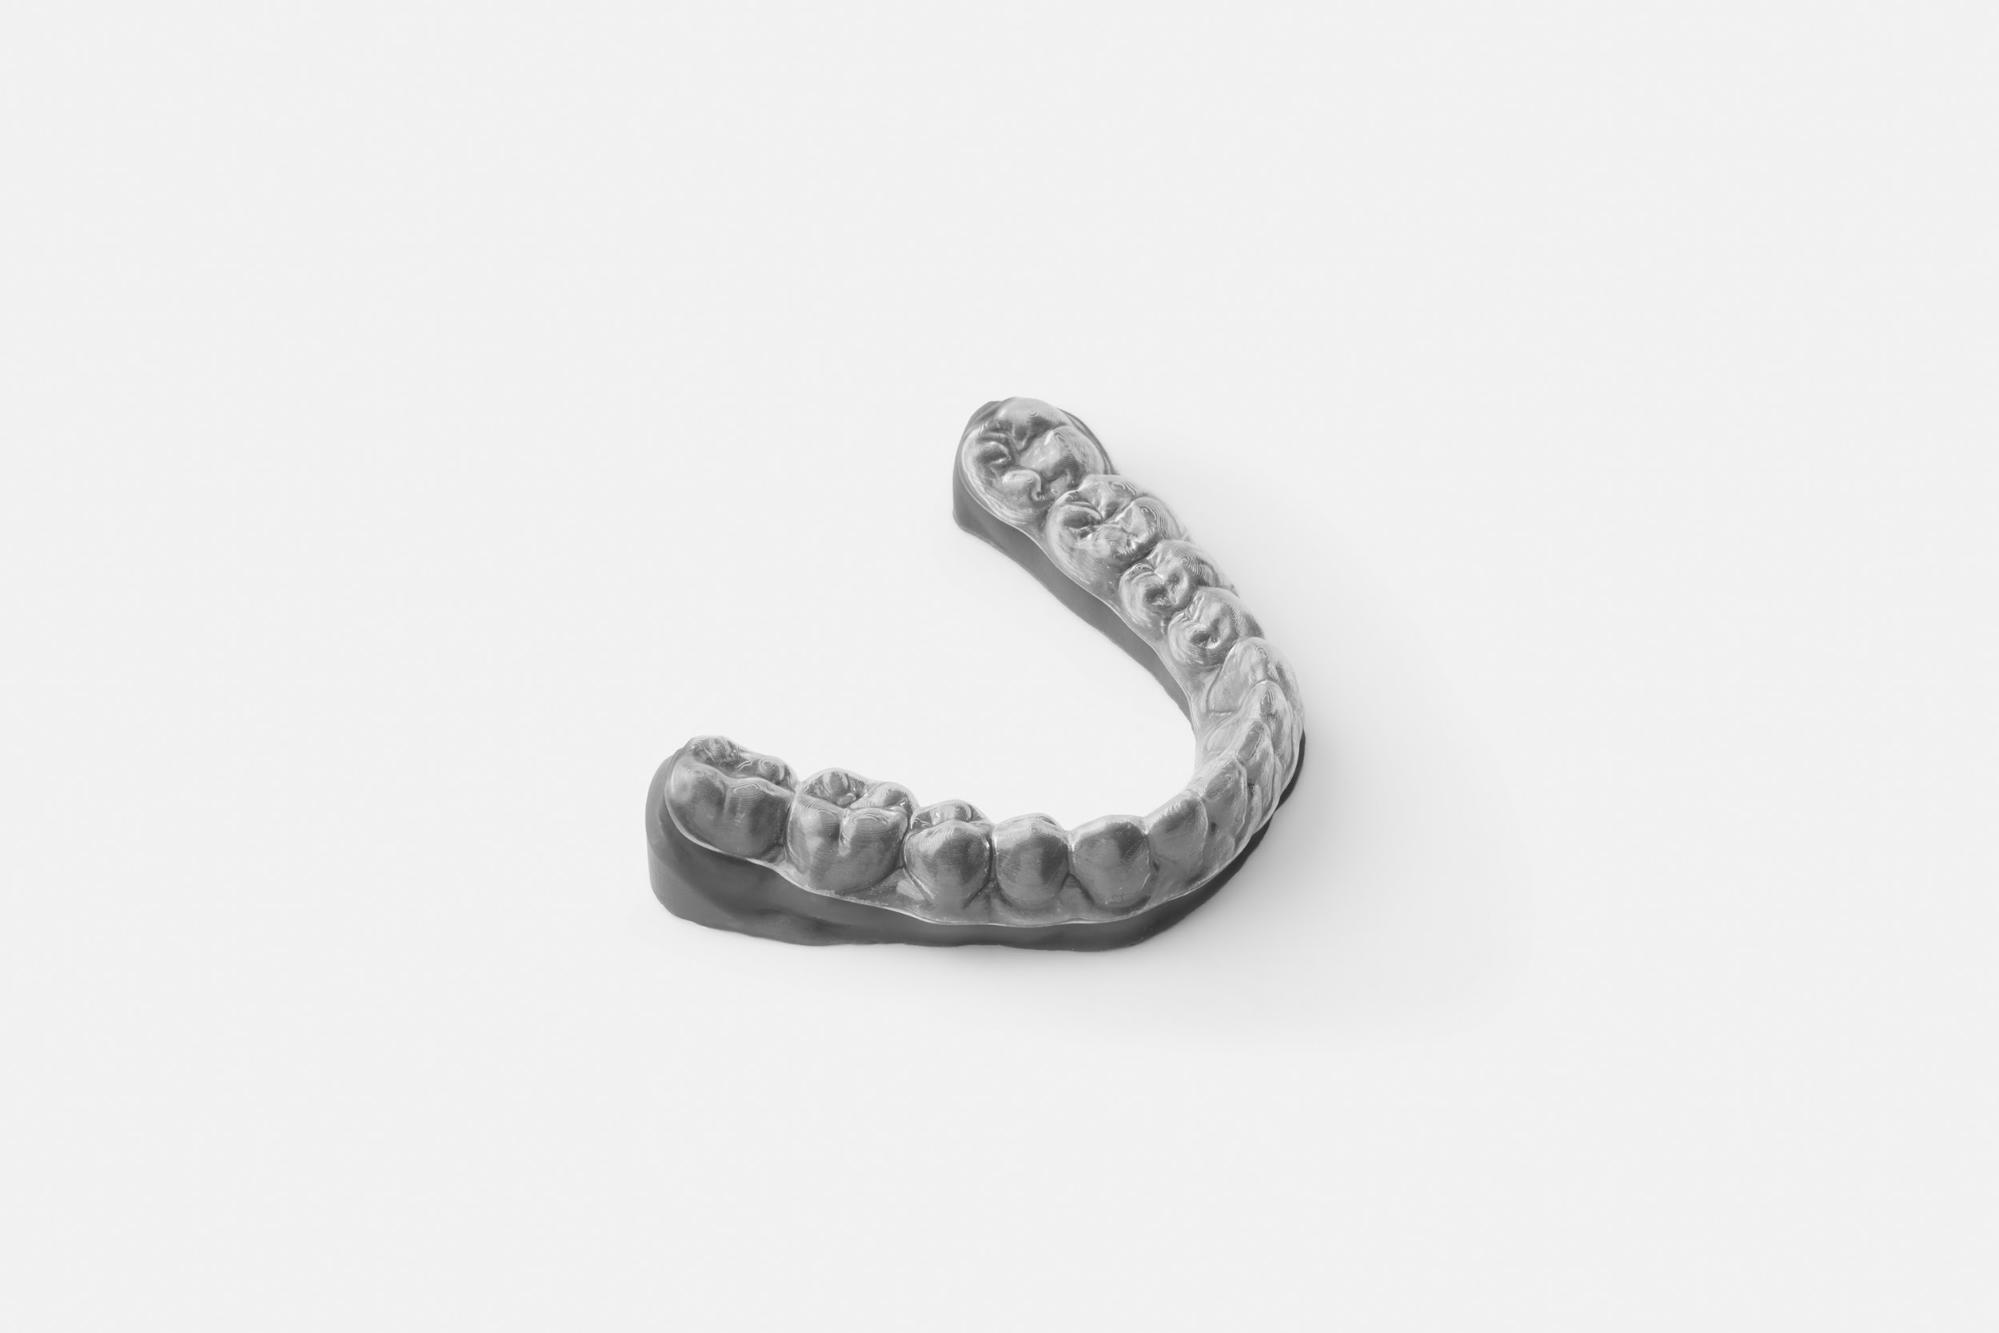 Thermoforming over 3D printed models is one of the most common ways to produce dental clear aligners today.